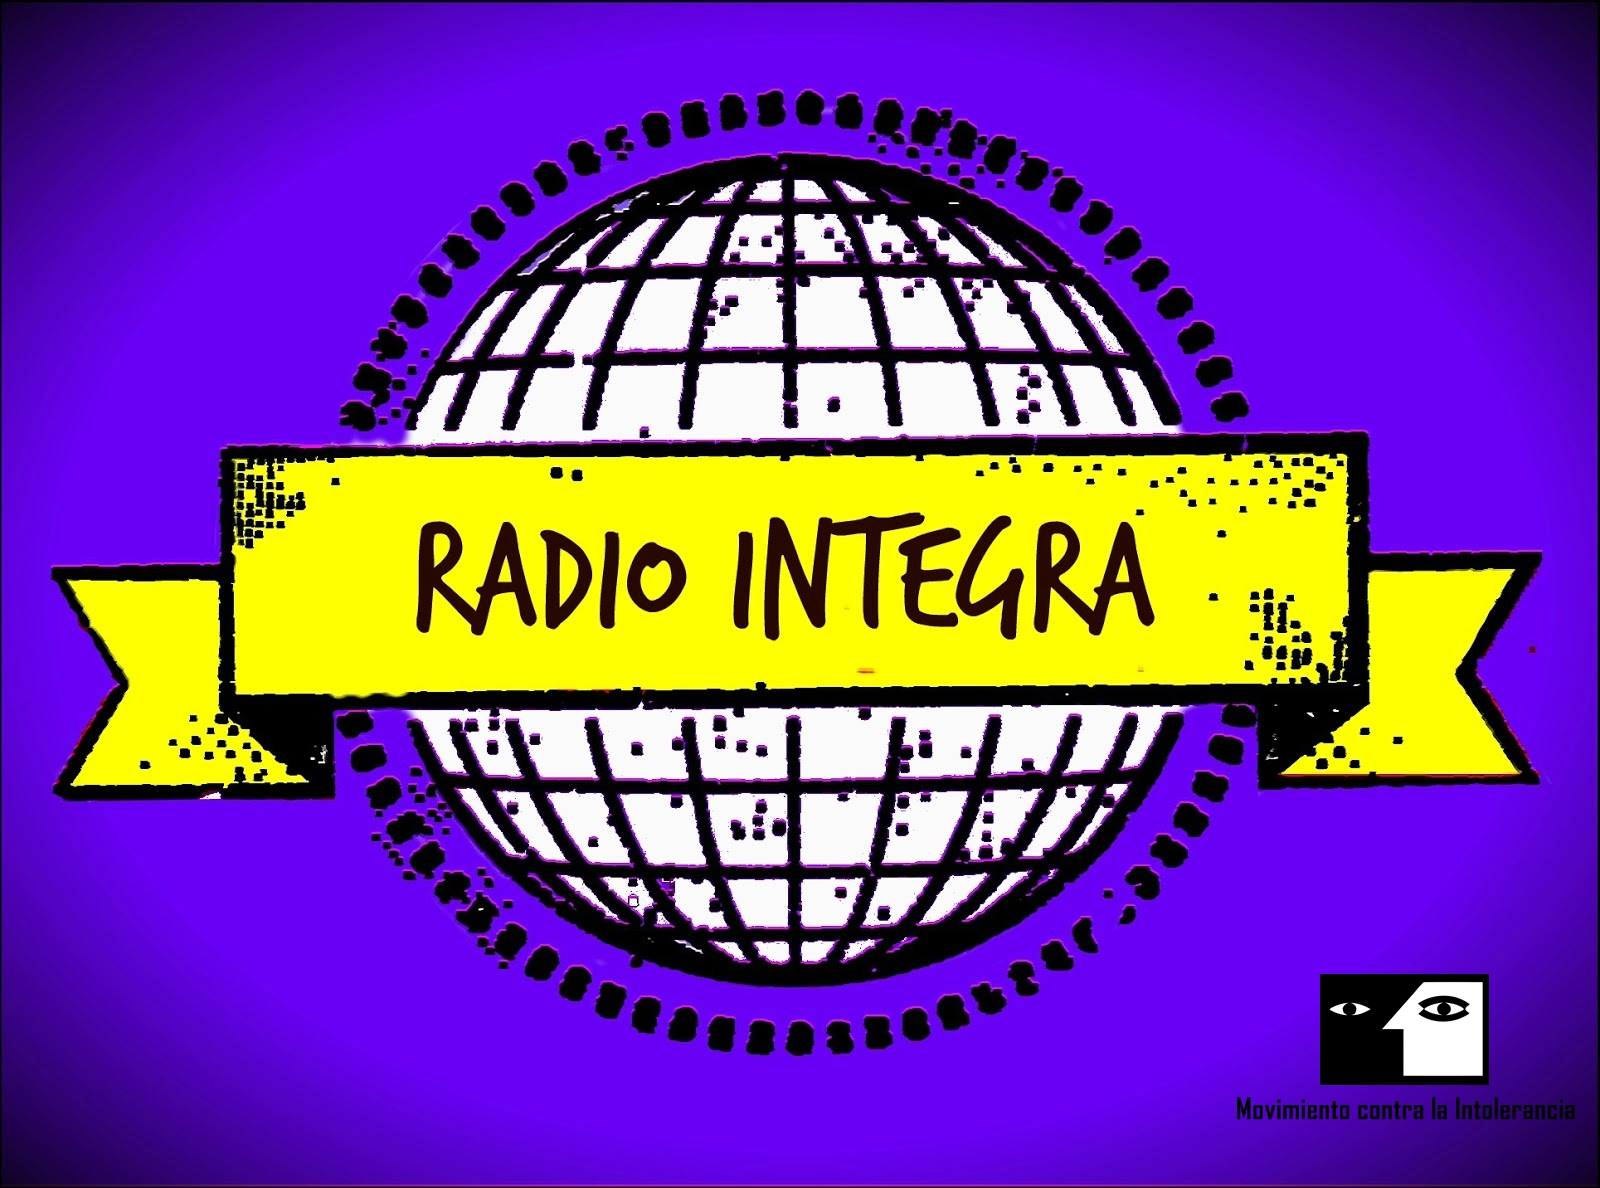 RADIO INTEGRA